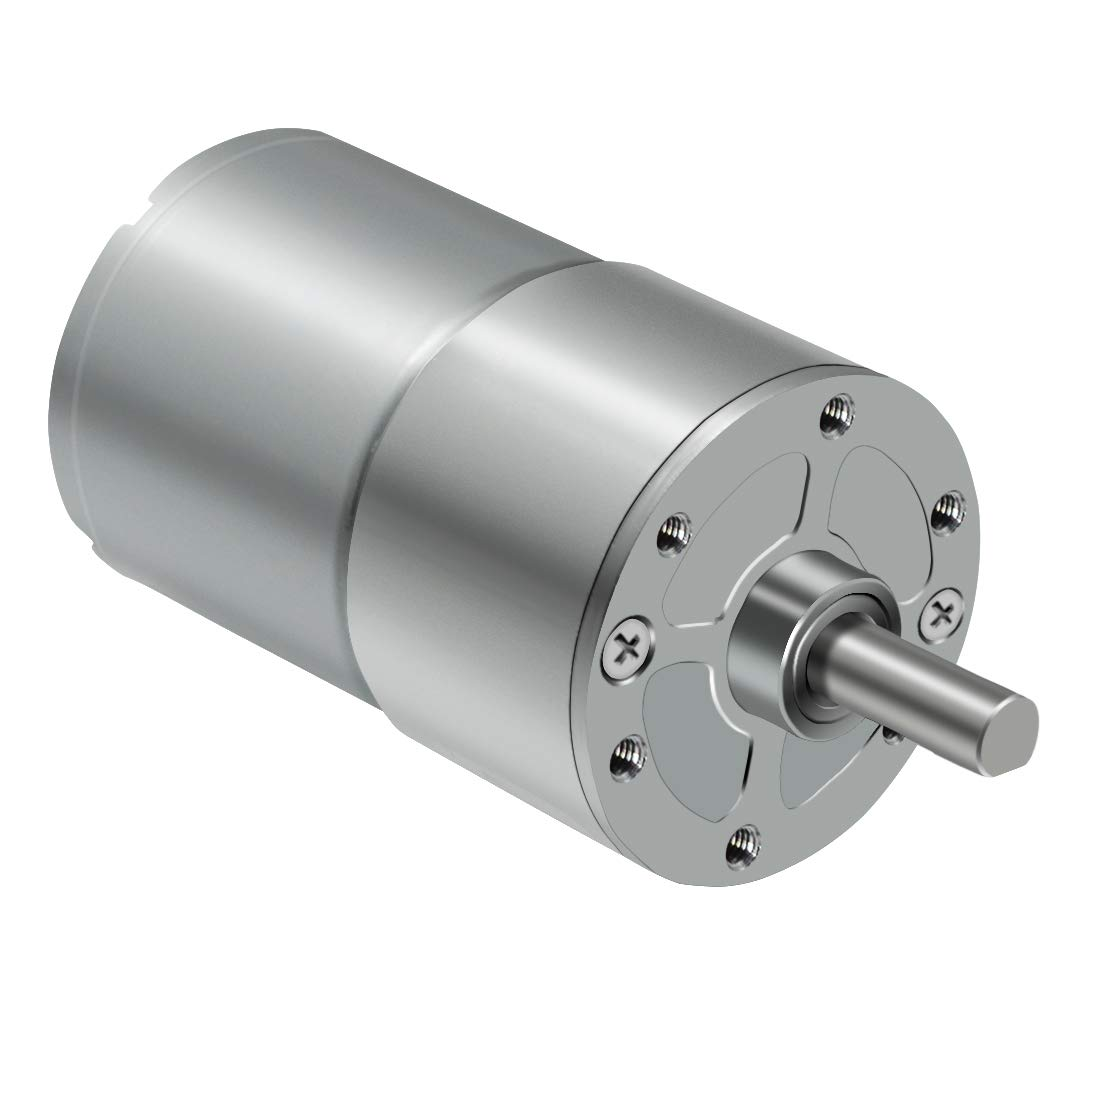 LMioEtool DC Electric Gear Motor, High Torque Reversible Mini Speed Reduction Geared Motor, with Metal Reducer Gearbox - Centric Output Shaft 37mm Diameter(12V/5RPM)